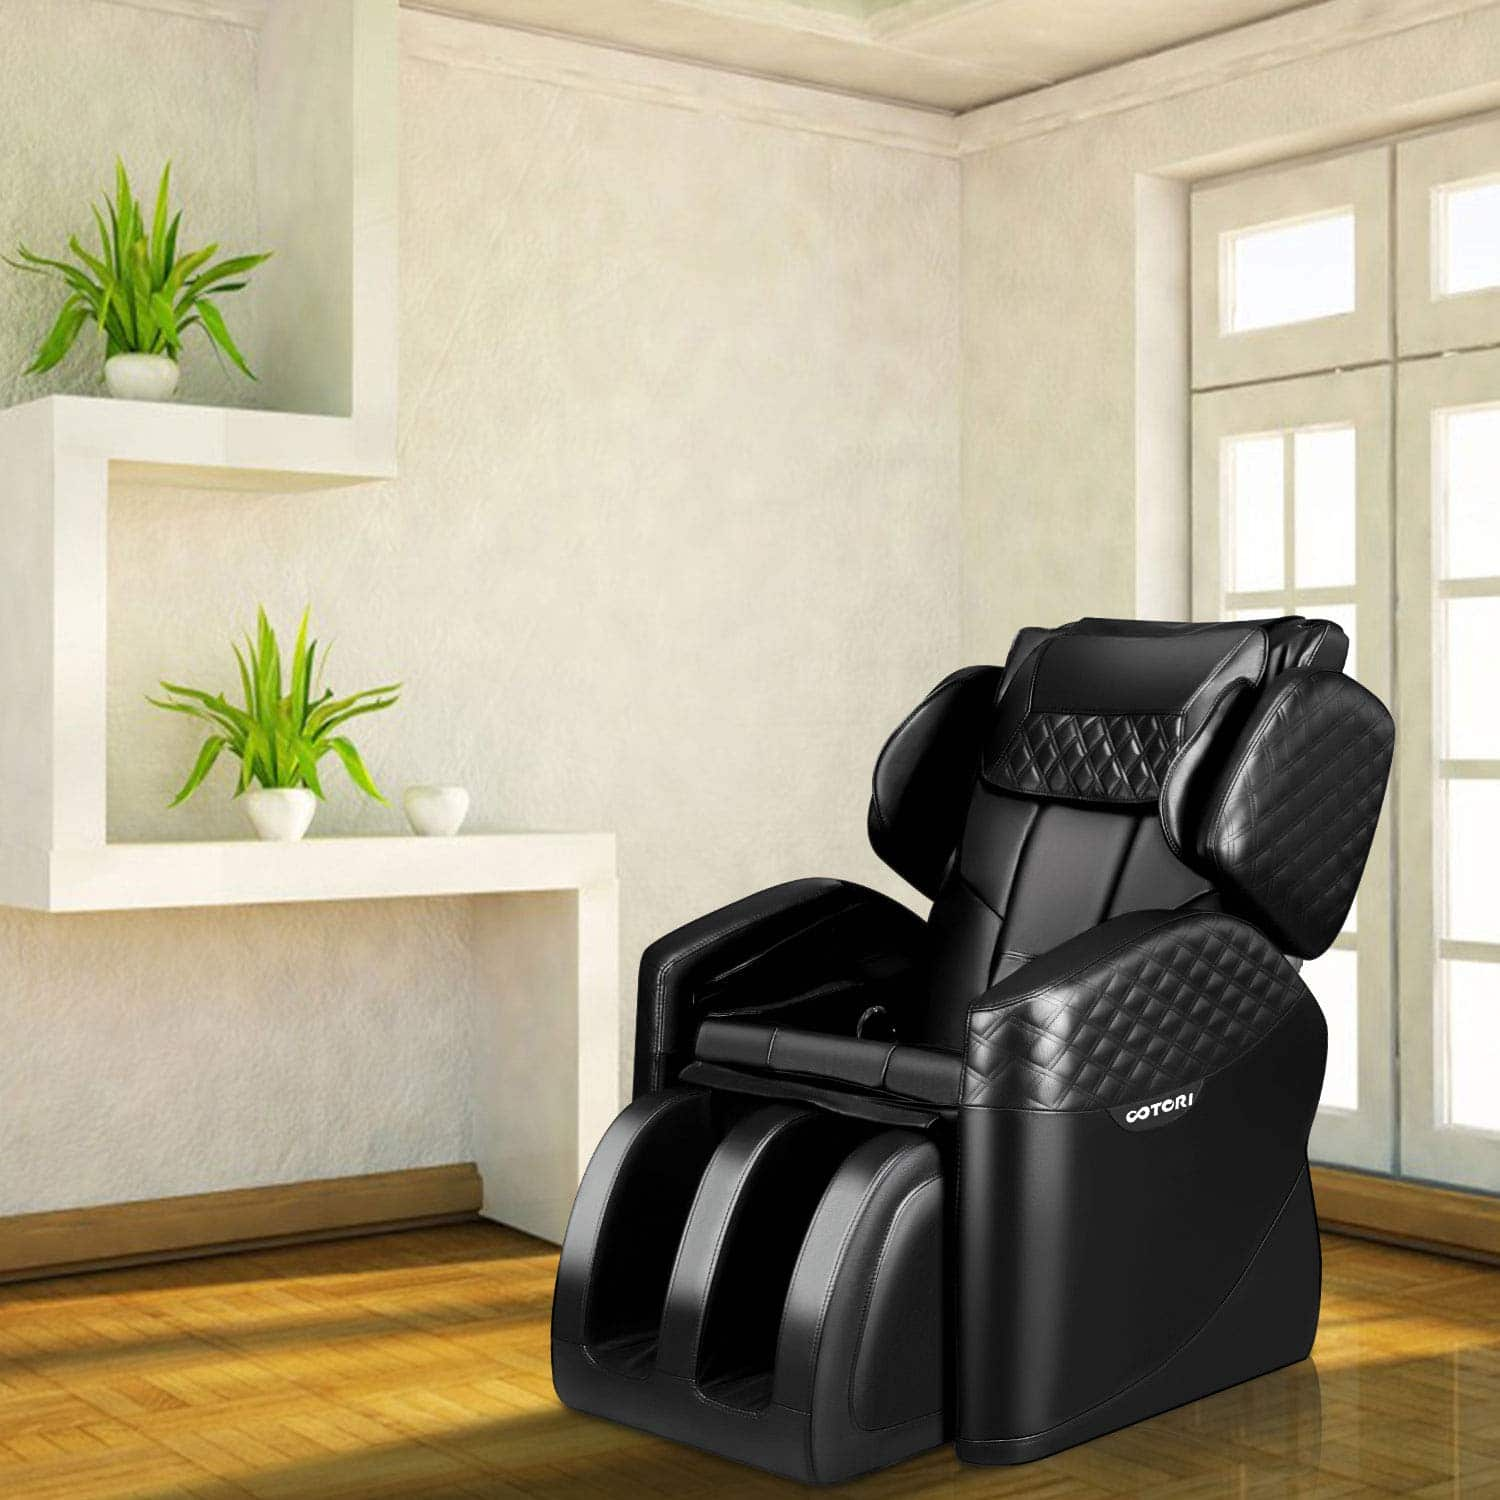 massage chair vs massage table